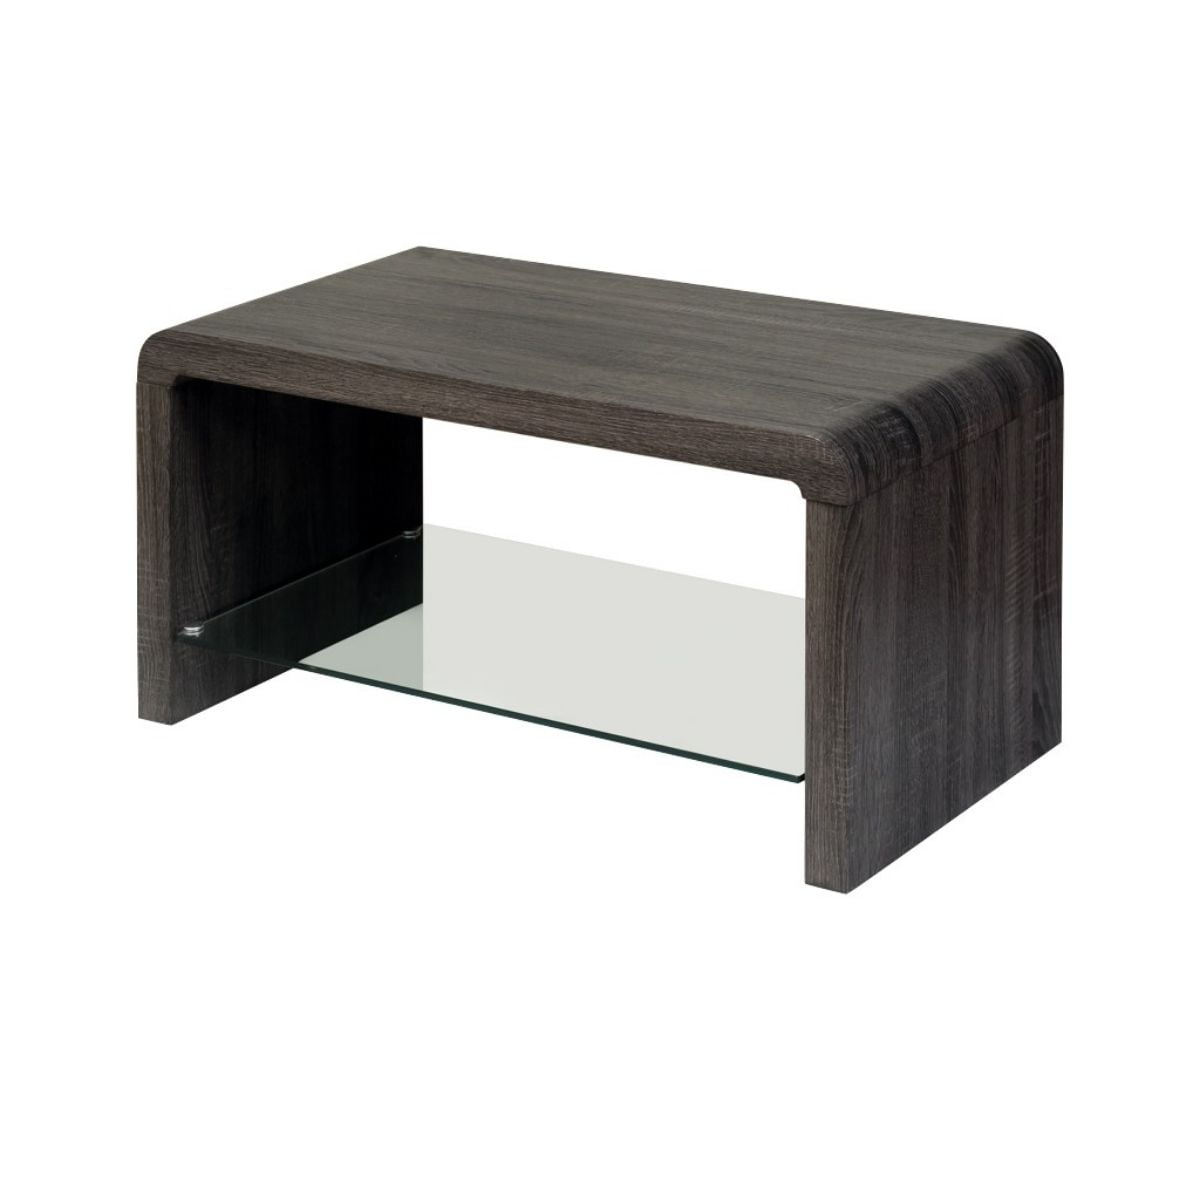 Curved Edge Coffee Table